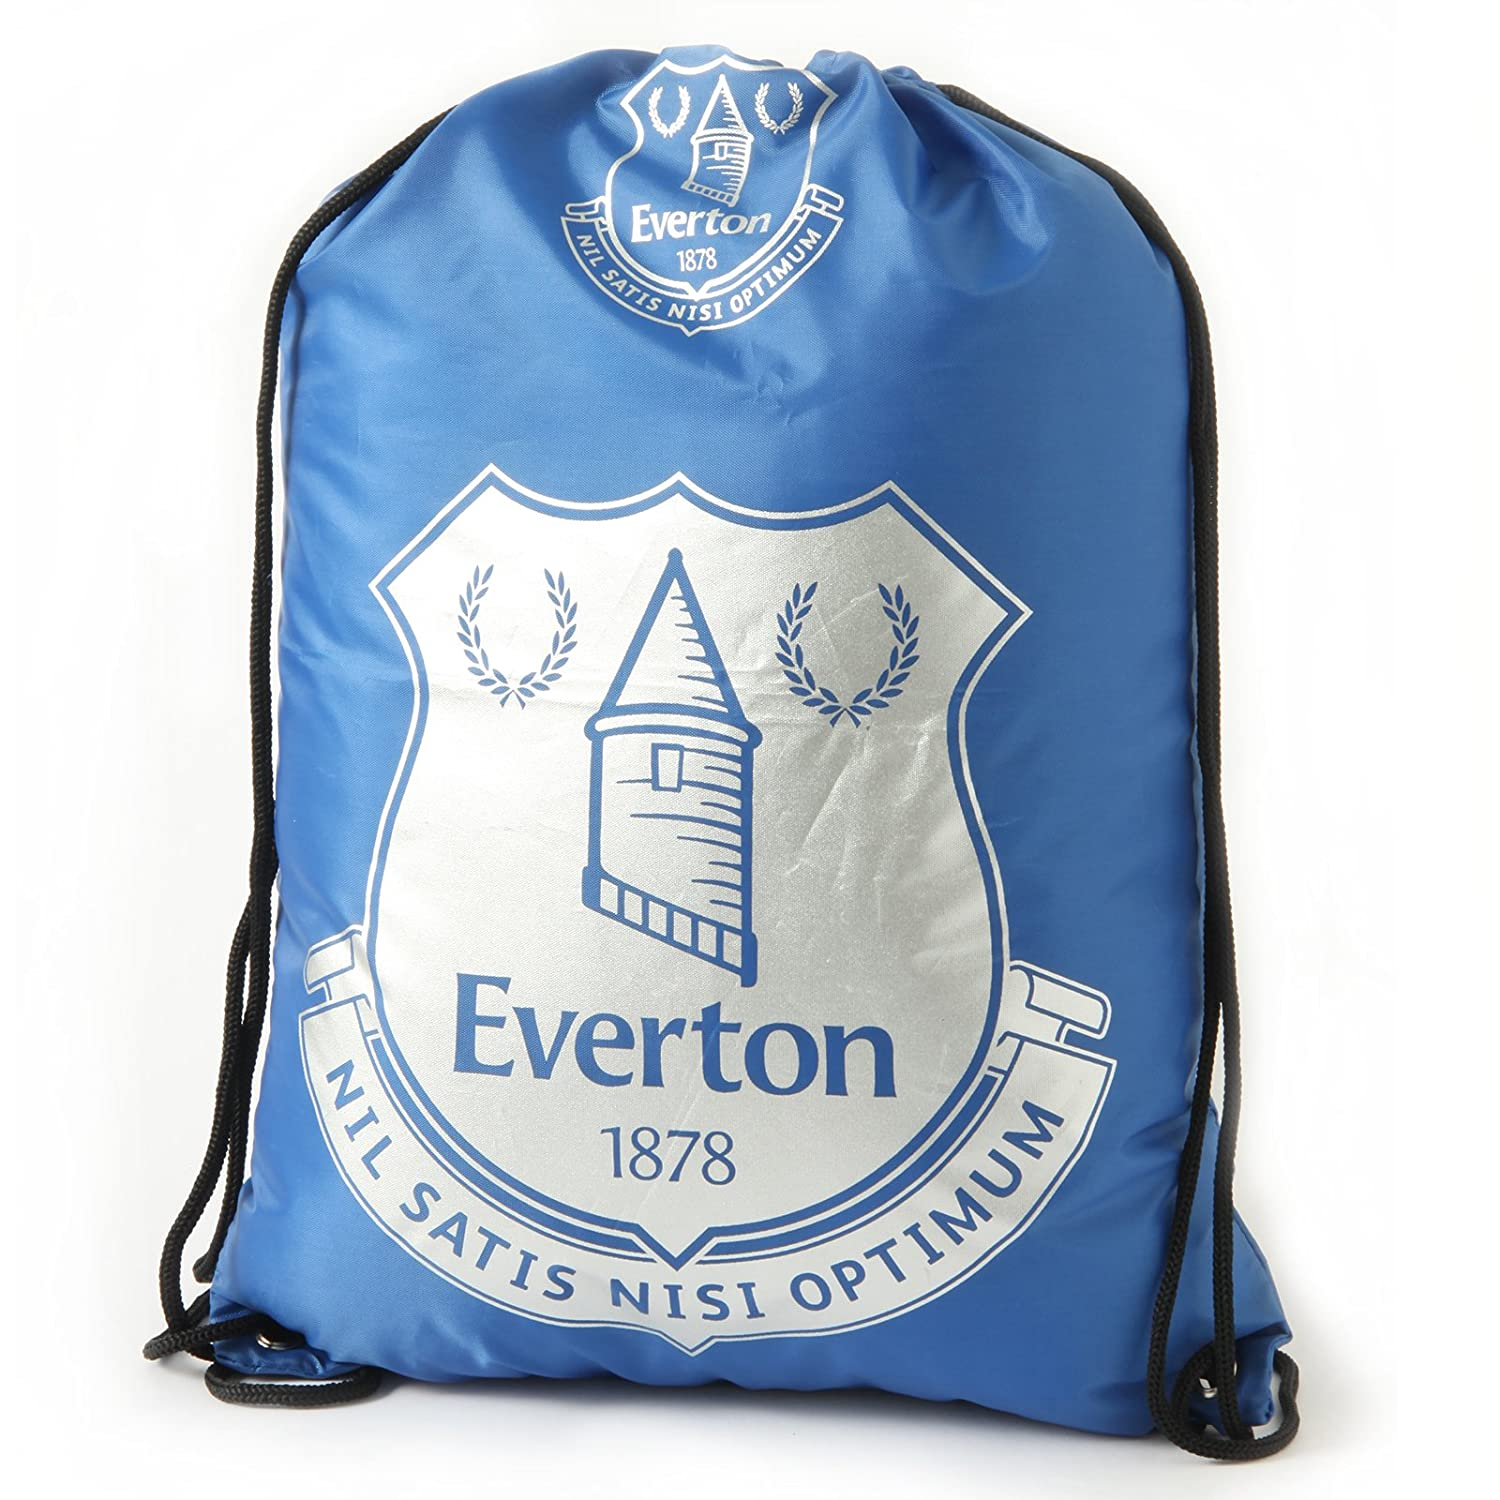 Everton FC Gifts Gym Bag FP CrashDVD